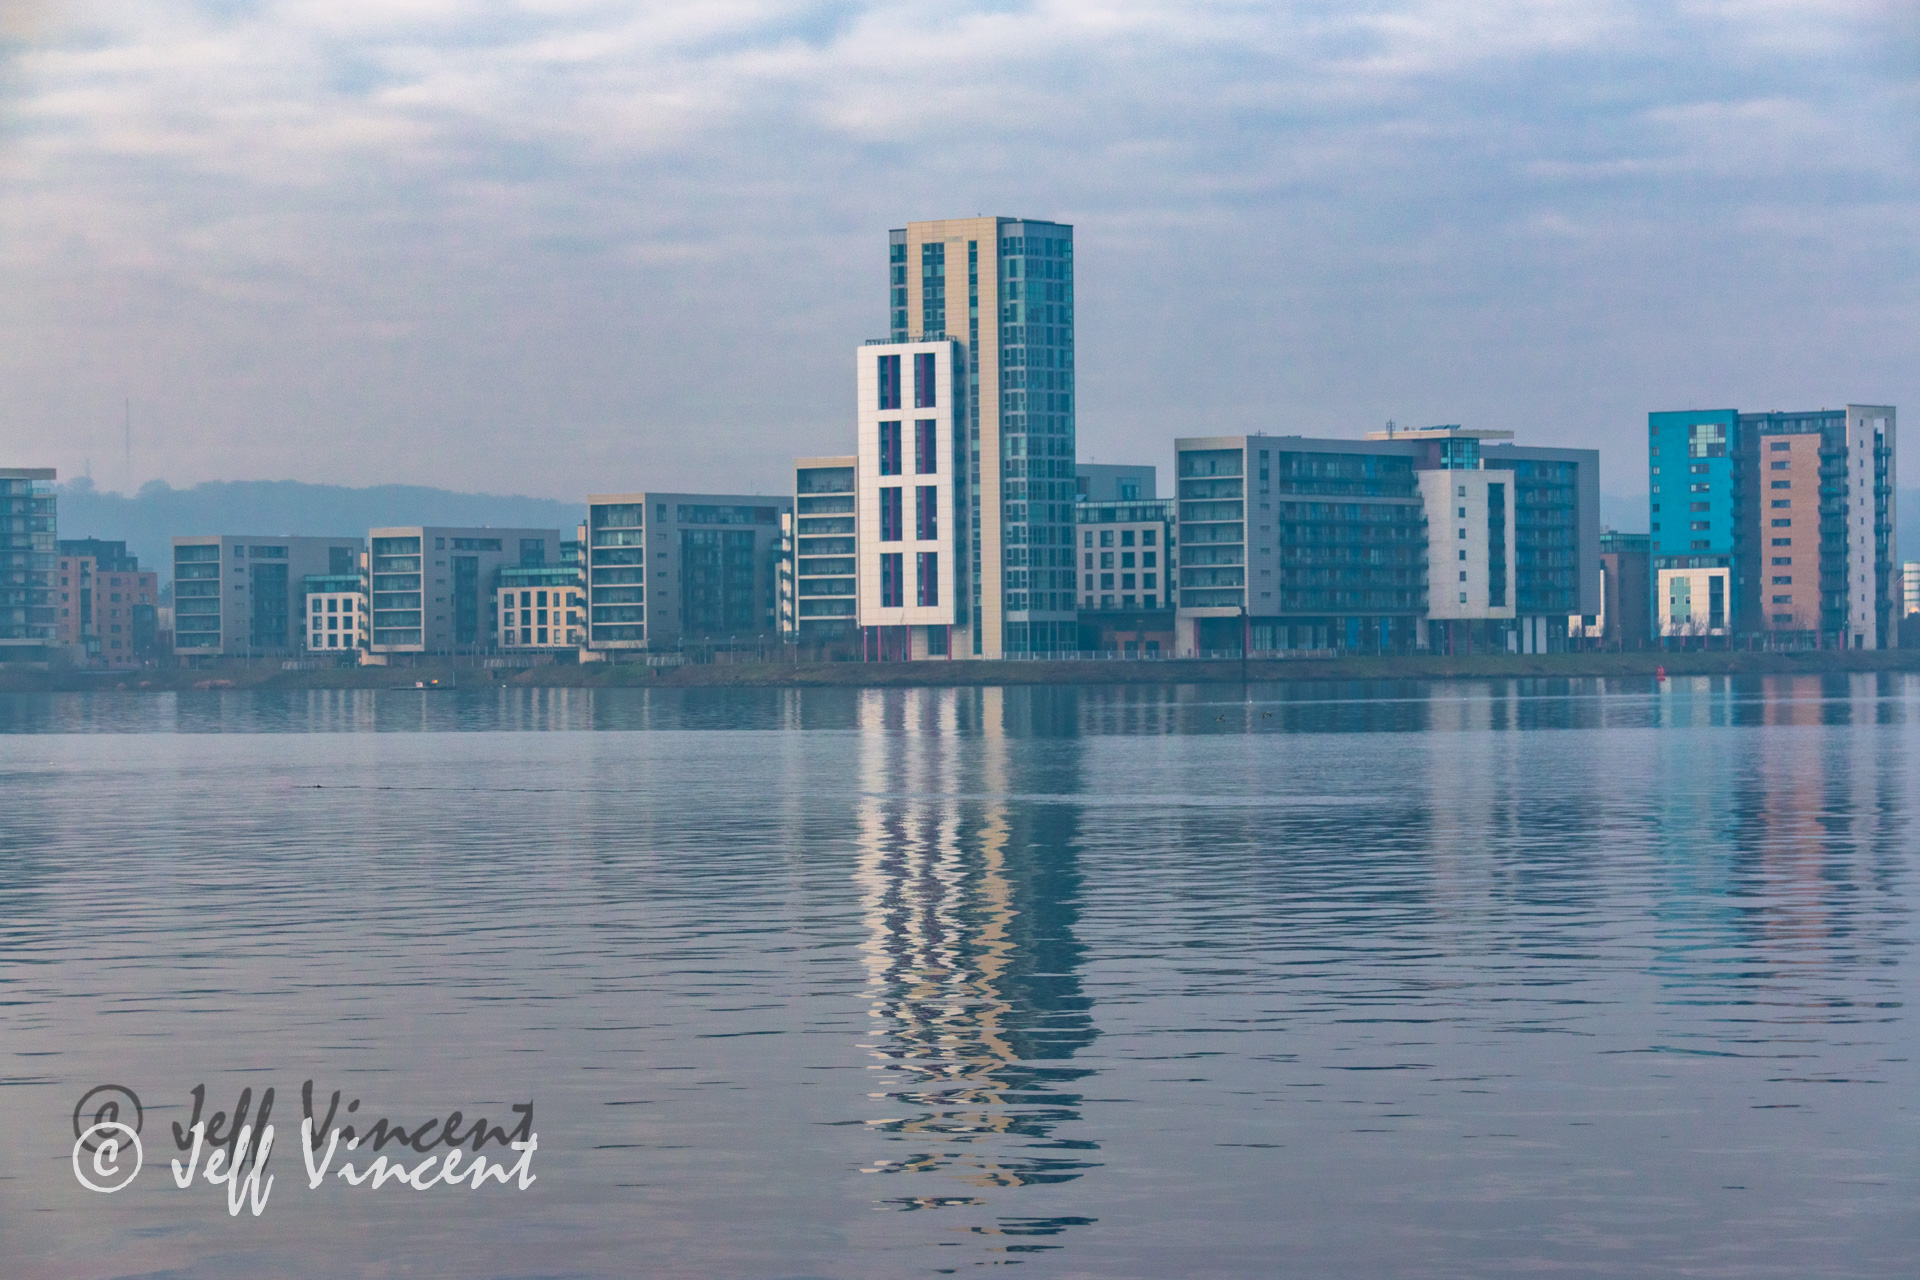 View Across Cardiff Bay - with Lightroom Adjustments